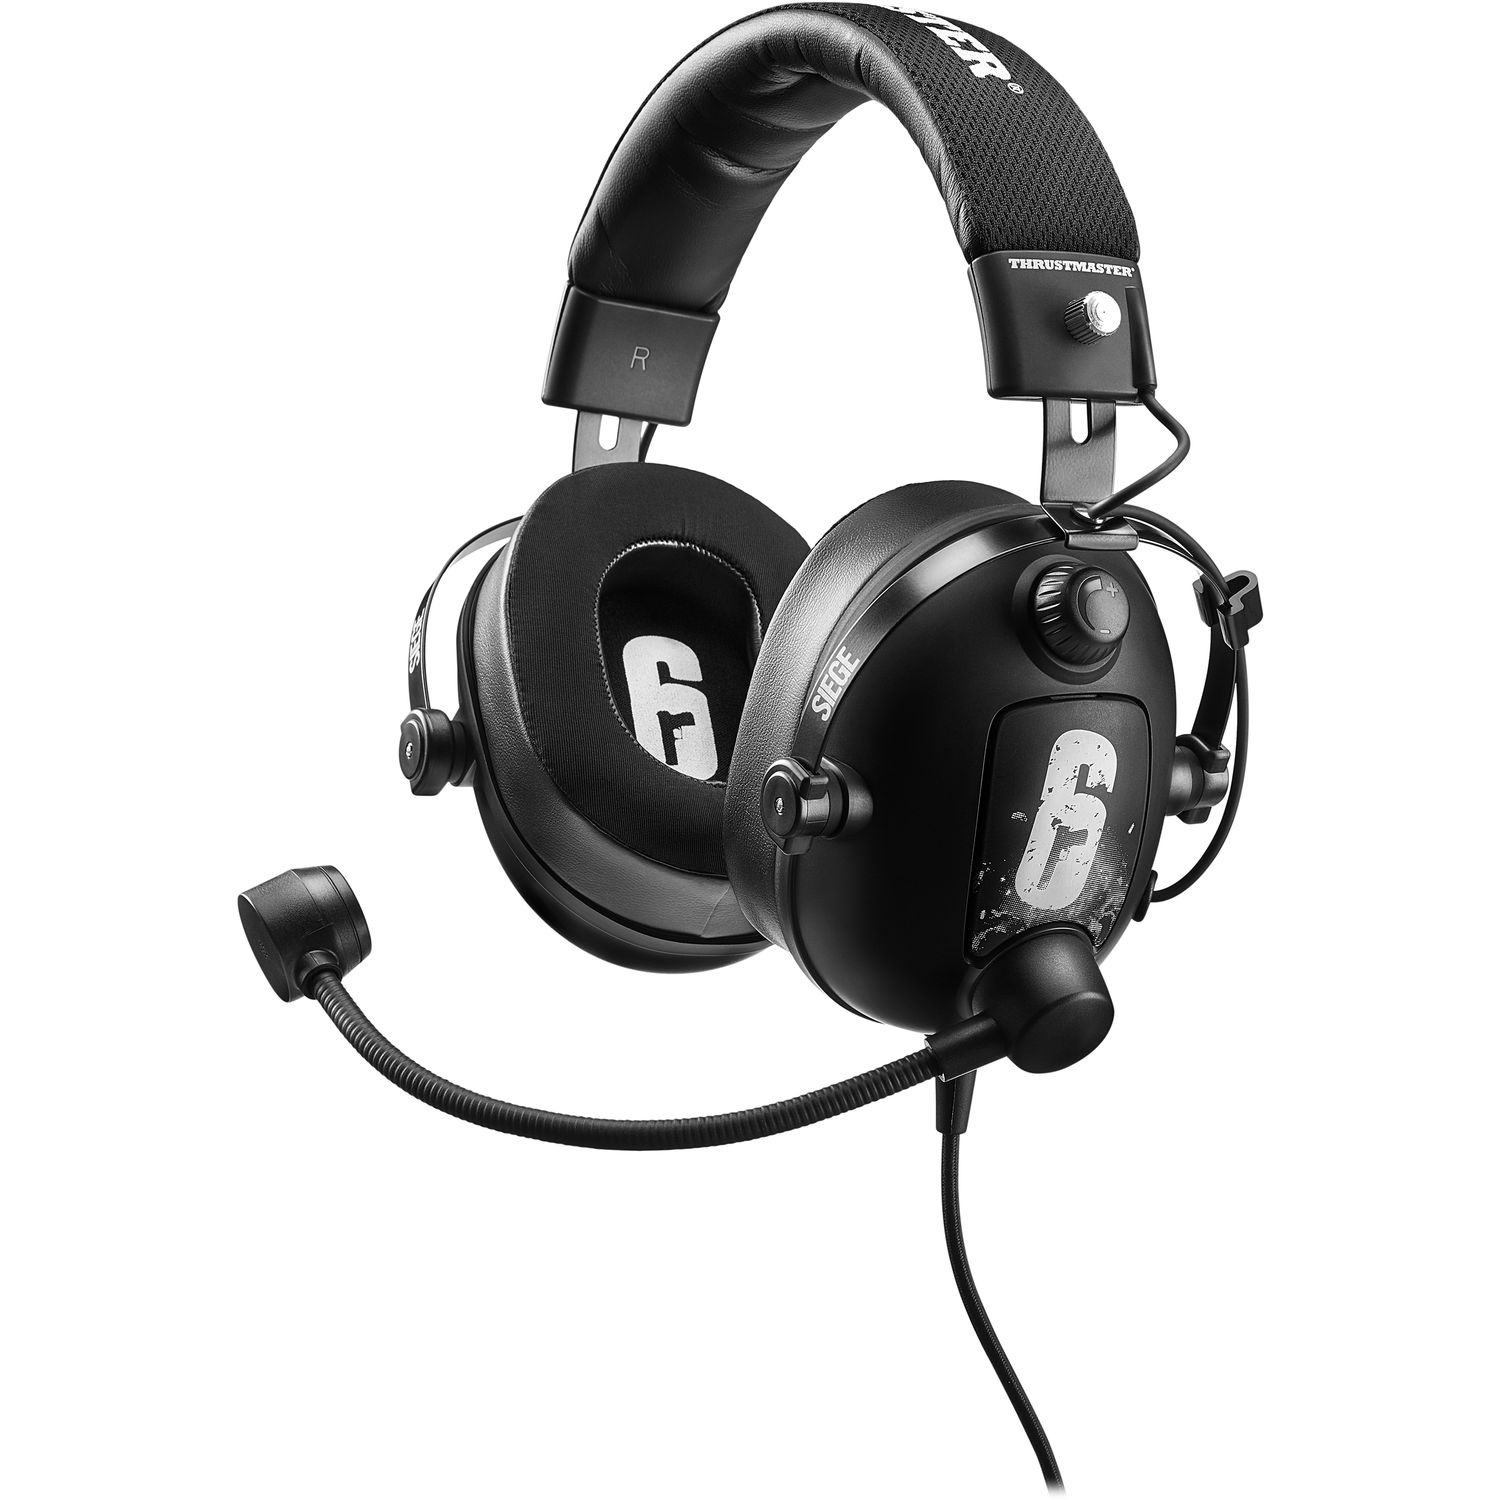 Thrustmaster T Assault Gaming Headset (Six Collection Edition)